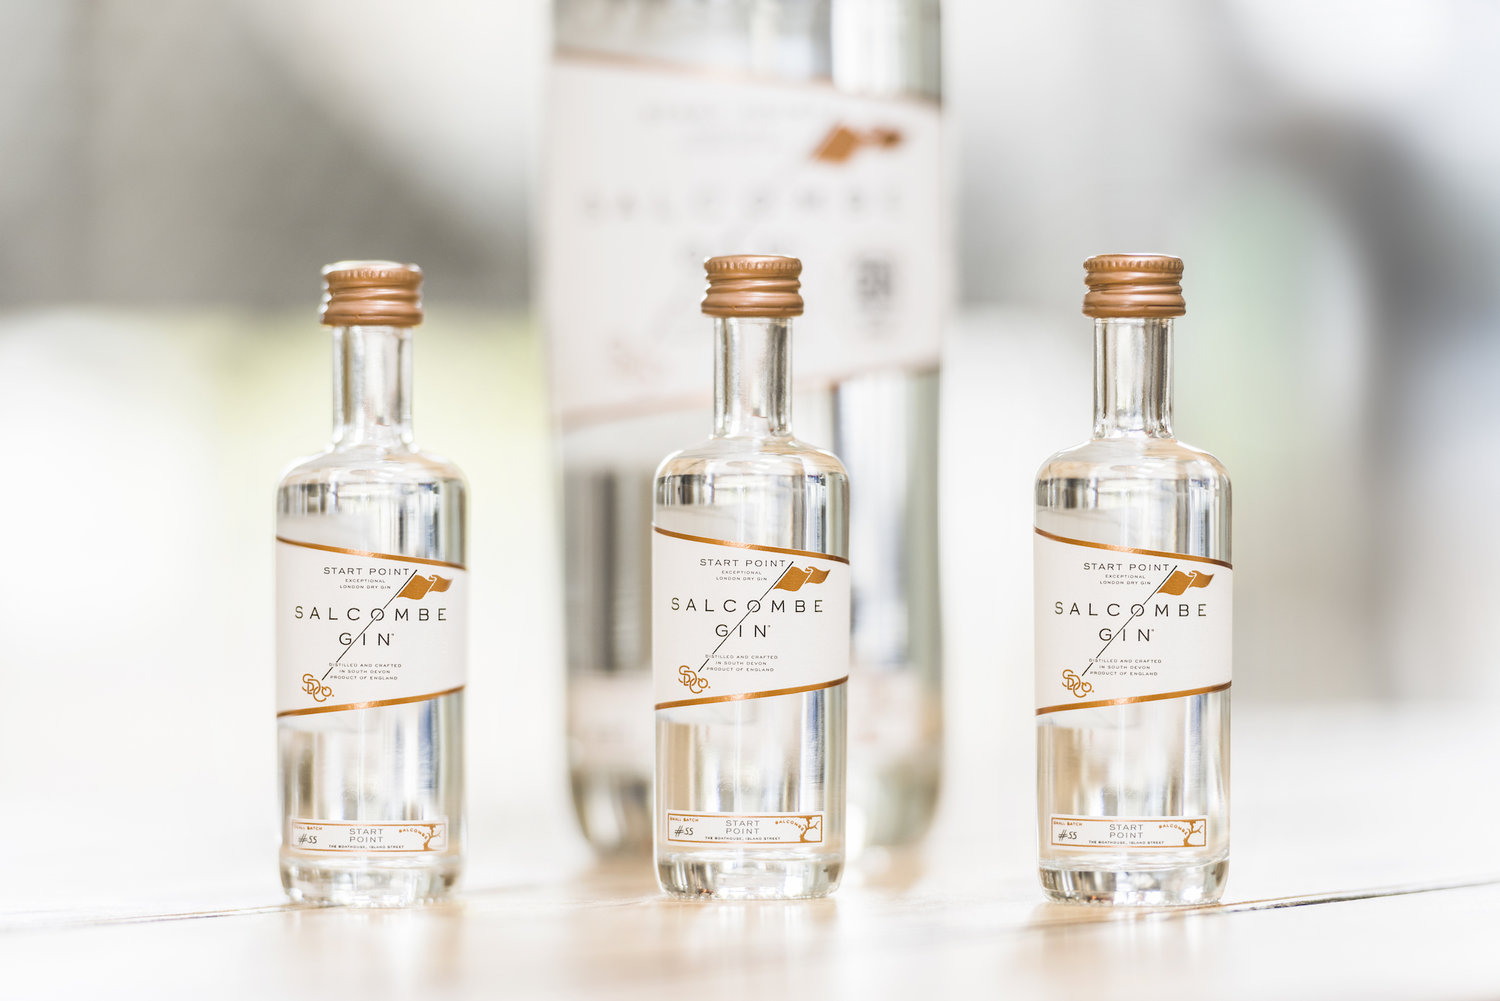 Salcombe Gin Starting Point 5cl